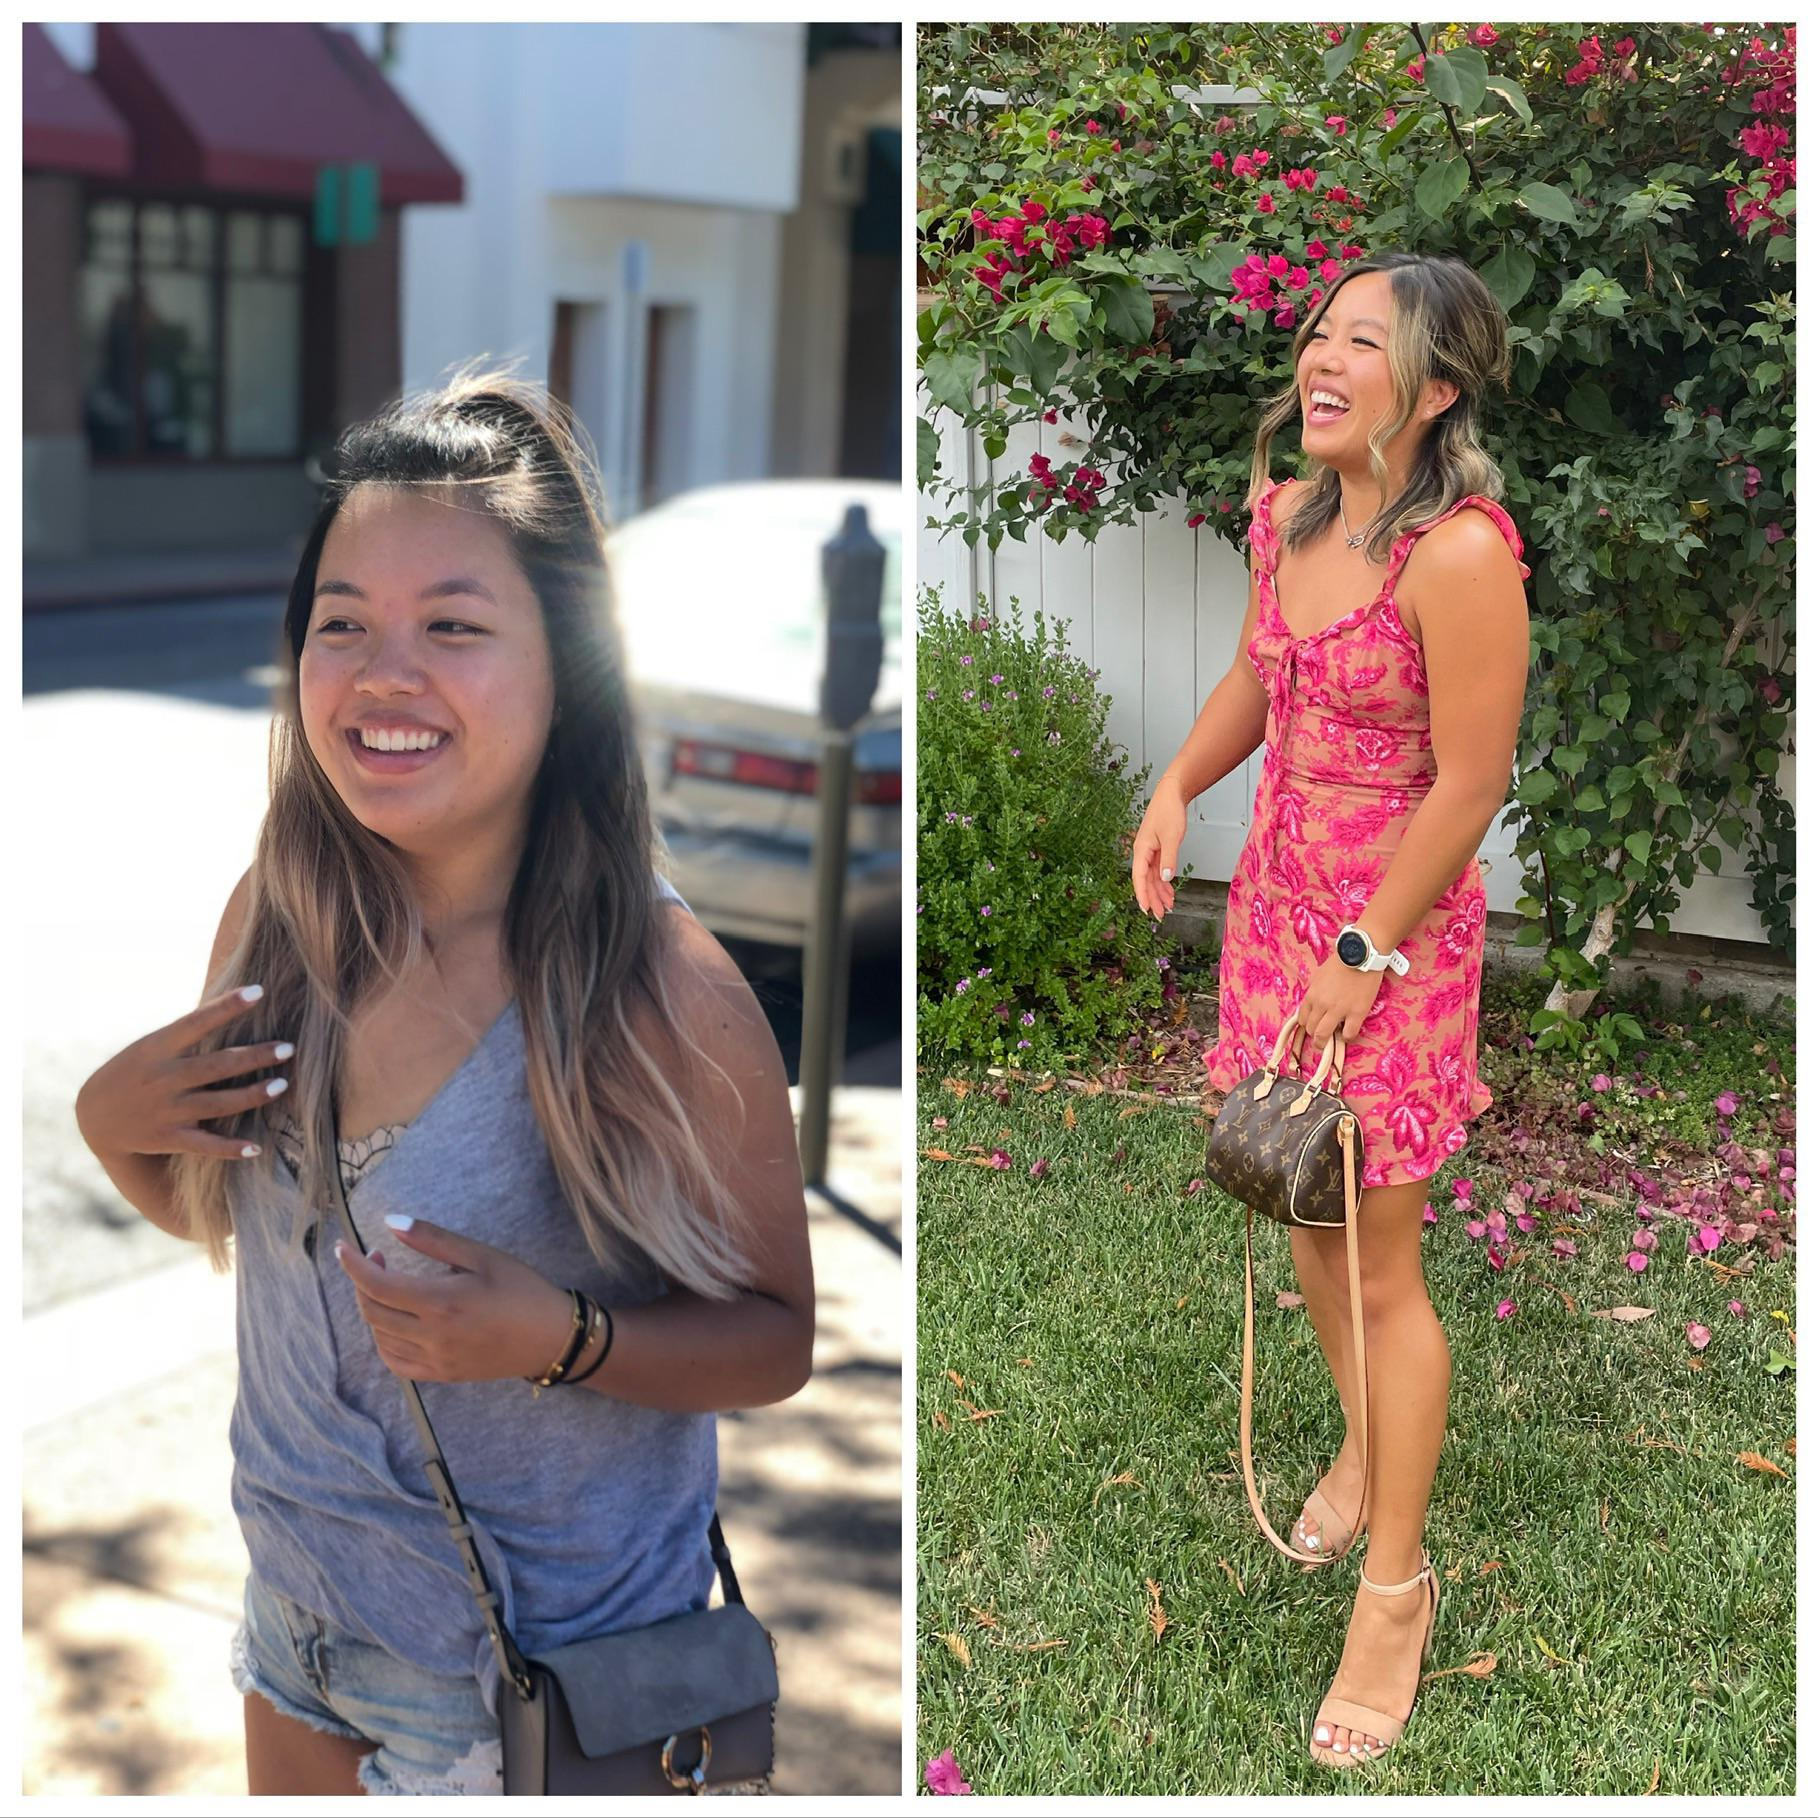 12 lbs Fat Loss Before and After 4 foot 11 Female 130 lbs to 118 lbs